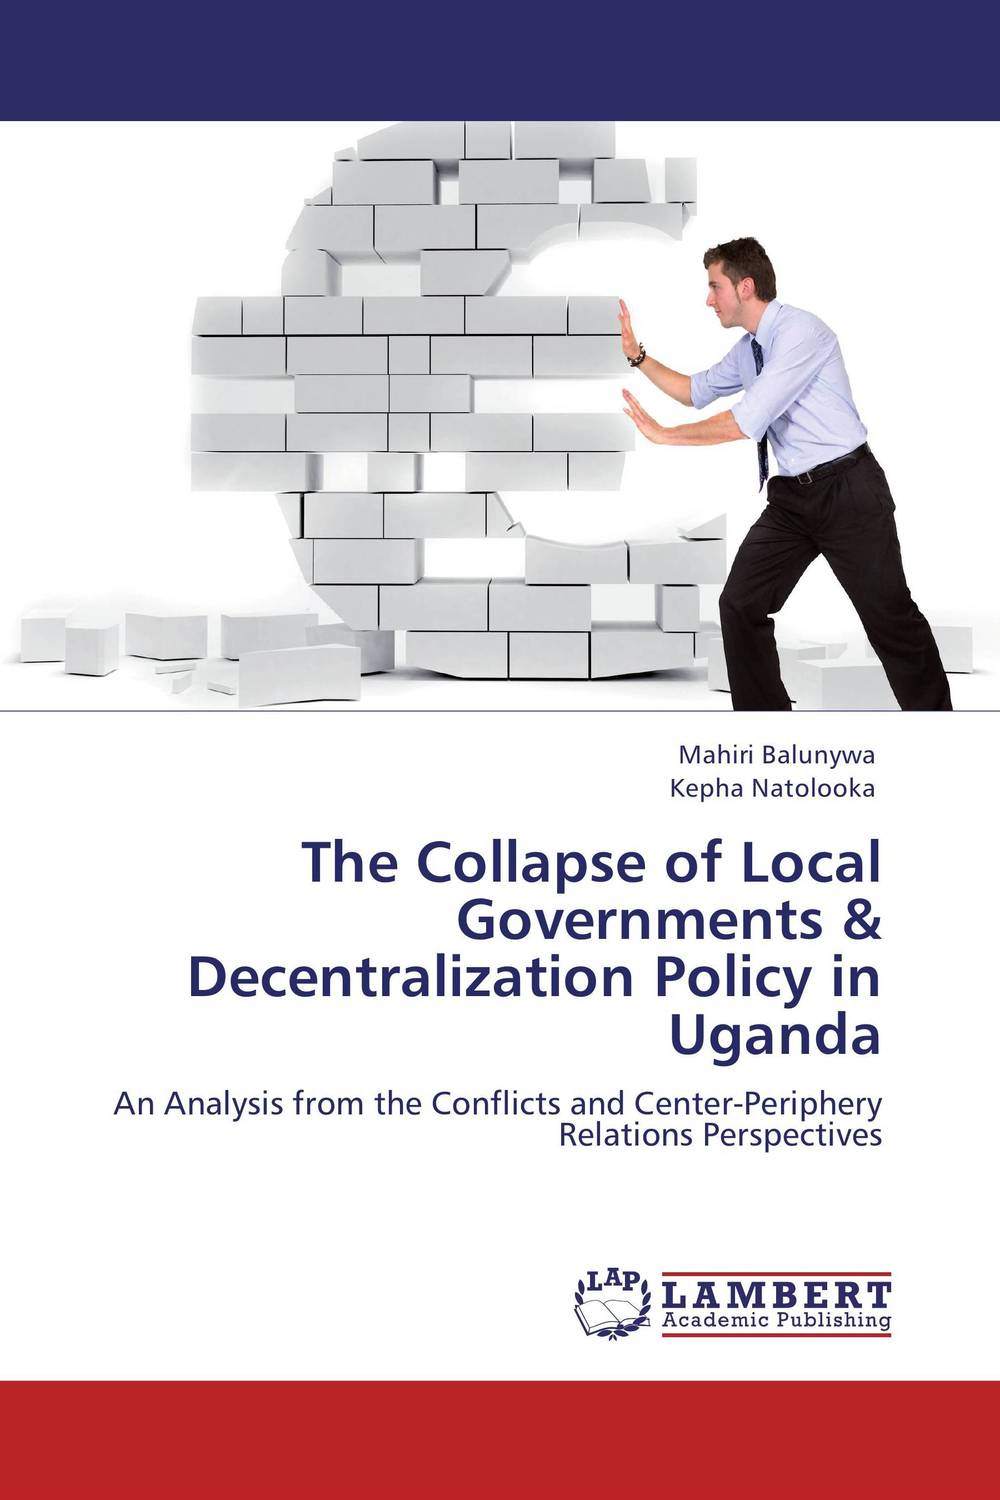 The Collapse of Local Governments & Decentralization Policy in Uganda шагомер omron hj 203 ed orange